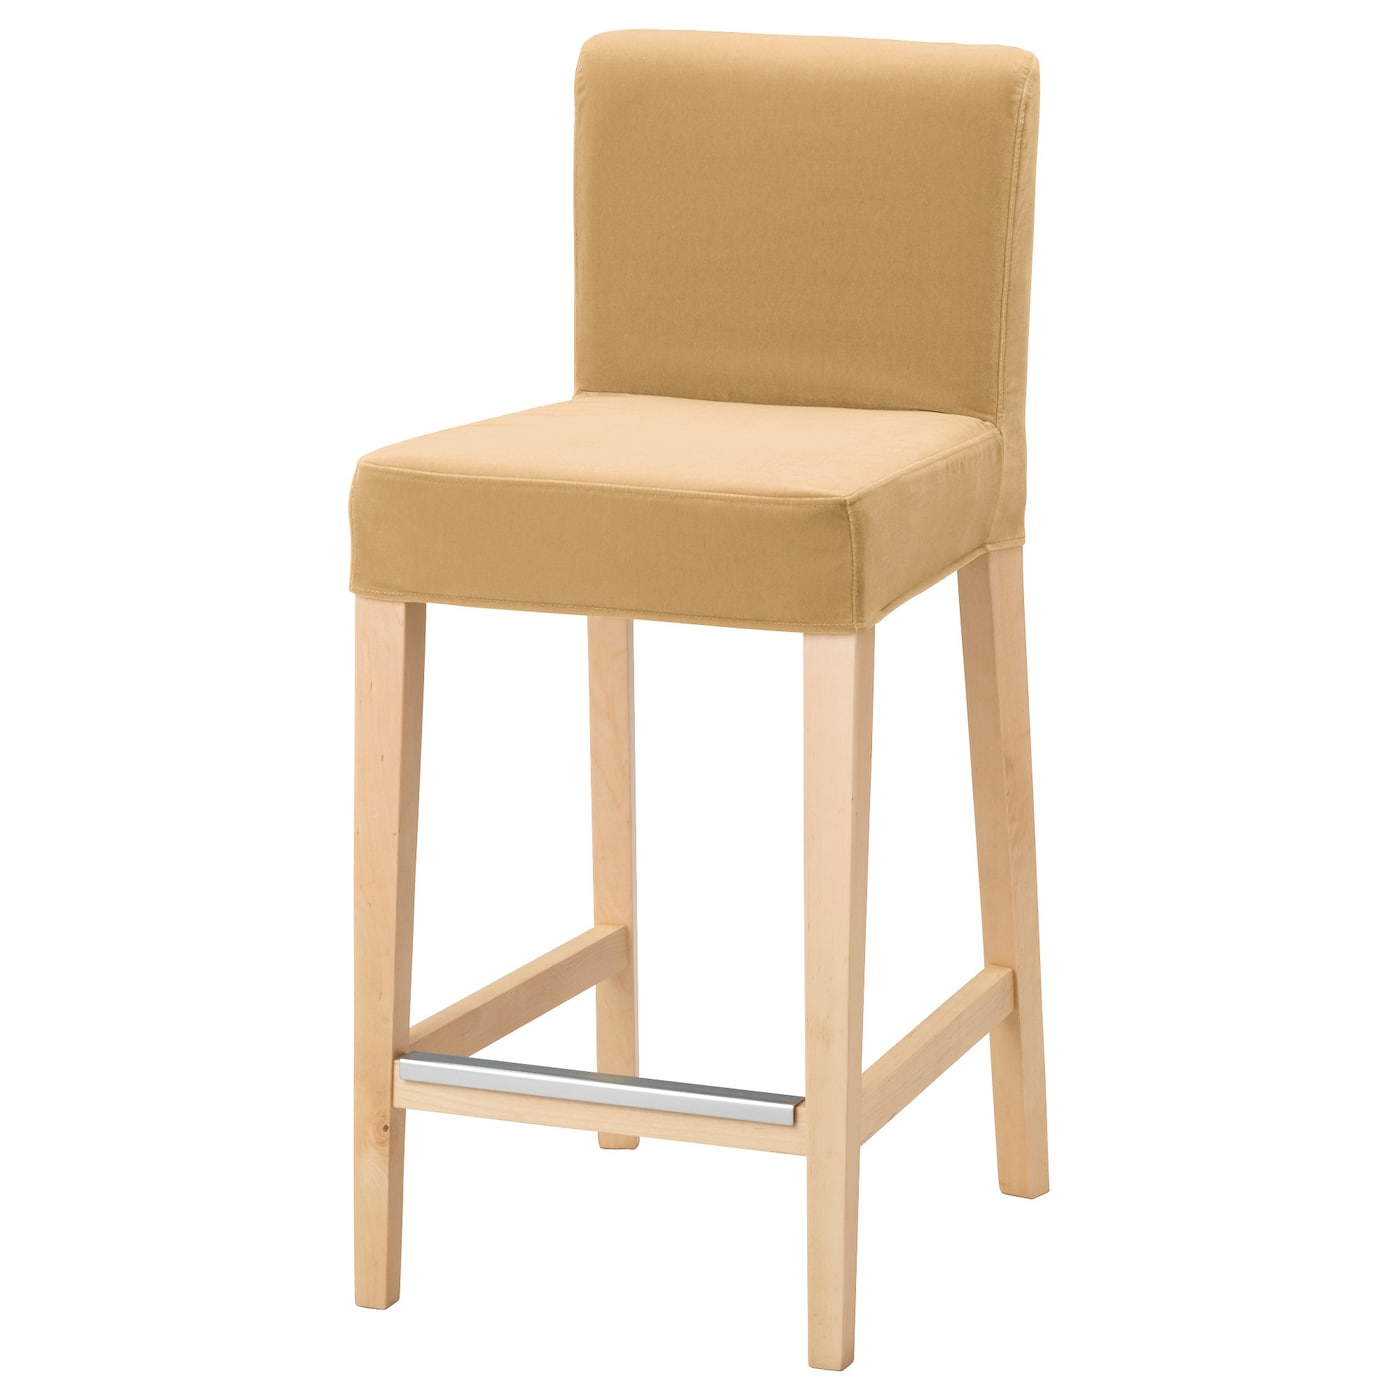 henriksdal tabouret de bar dossier bouleau djuparp jaune beige 63 cm ikea. Black Bedroom Furniture Sets. Home Design Ideas